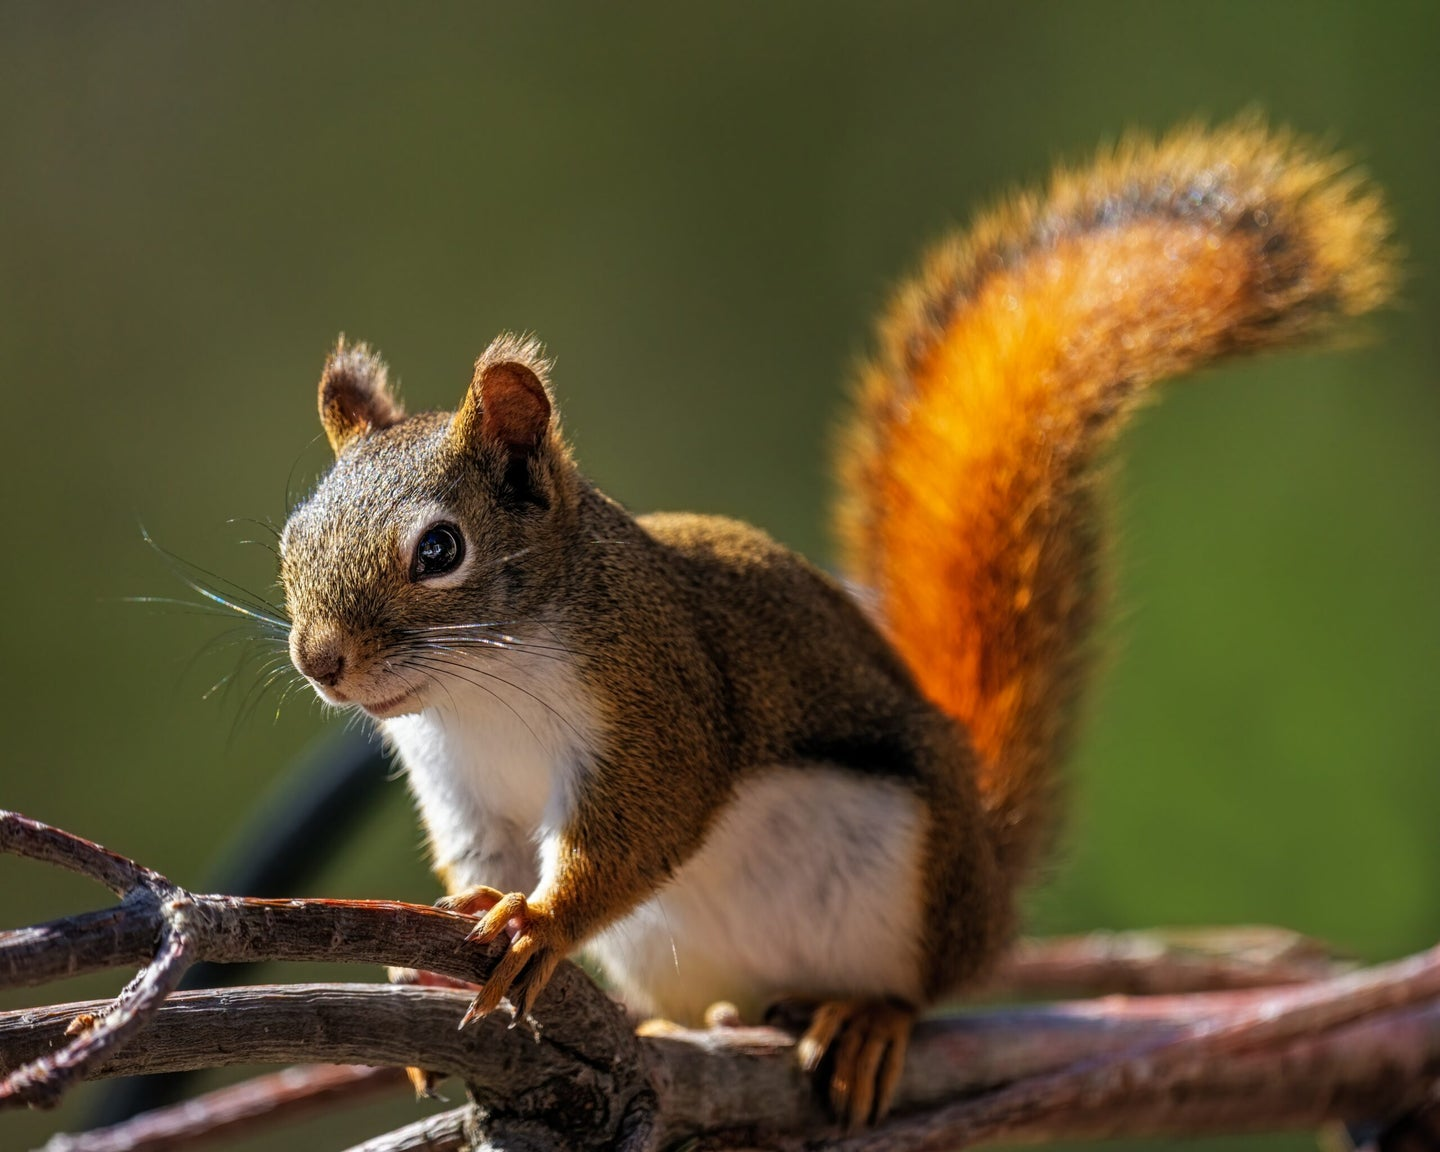 Squirrel climbing on a branch